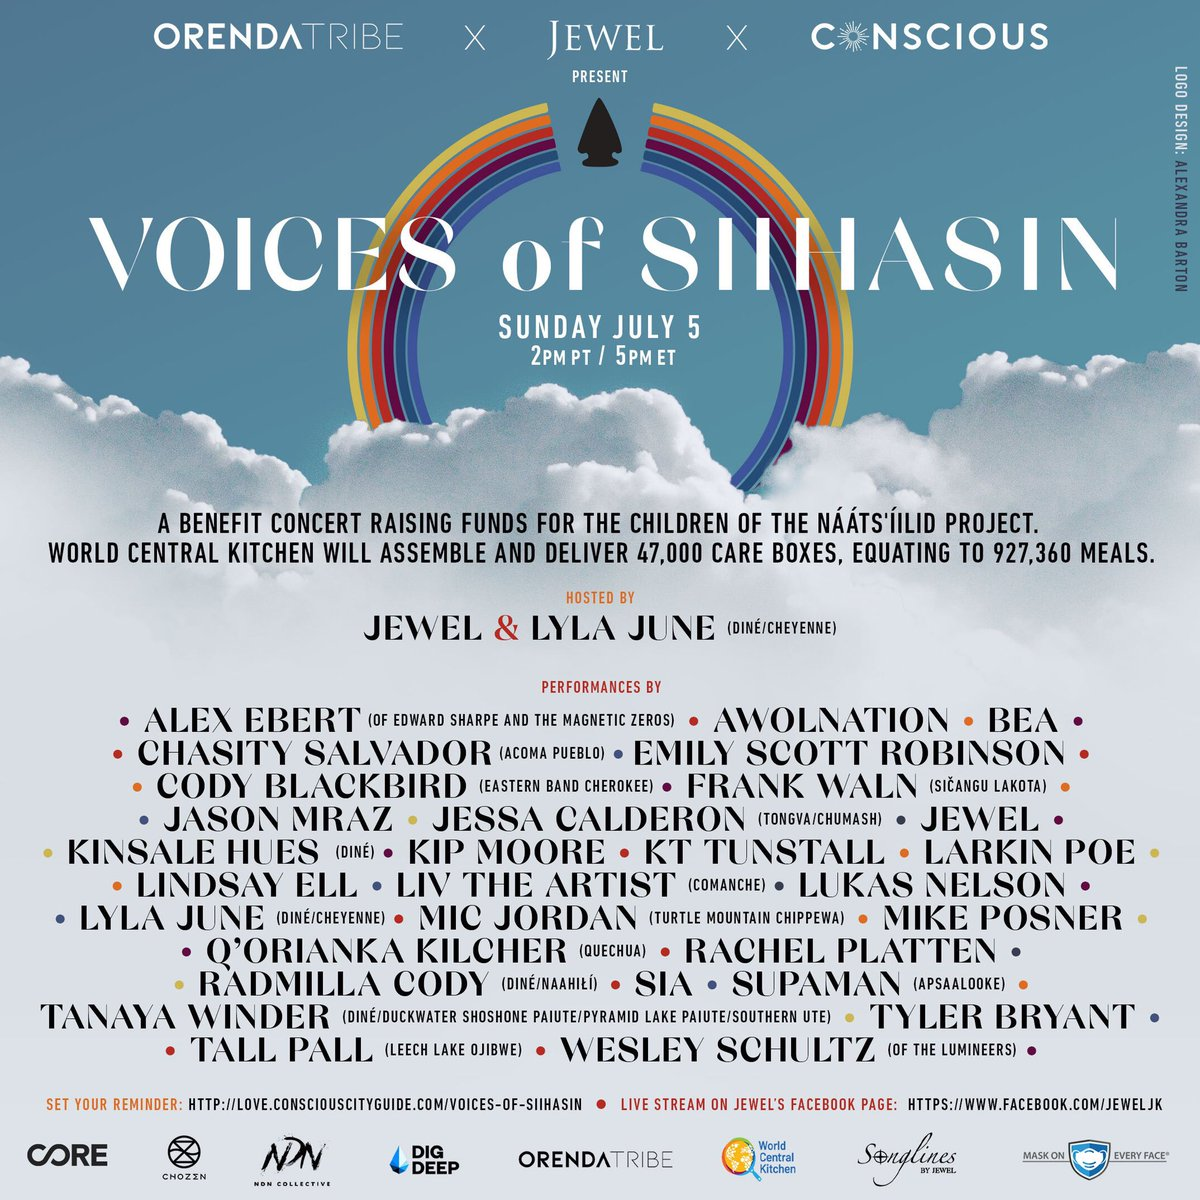 Beginning in under an hour— #VoicesofSiihasin is a benefit concert for WCK to provide meals to Diné children this summer. Tune in to see @jeweljk, Lyla June, @Sia, @jason_mraz & more. With funds raised, WCK plans to distribute at least 47,000 food boxes! https://t.co/s6SjPhSdKJ https://t.co/7N7ml5vzpv